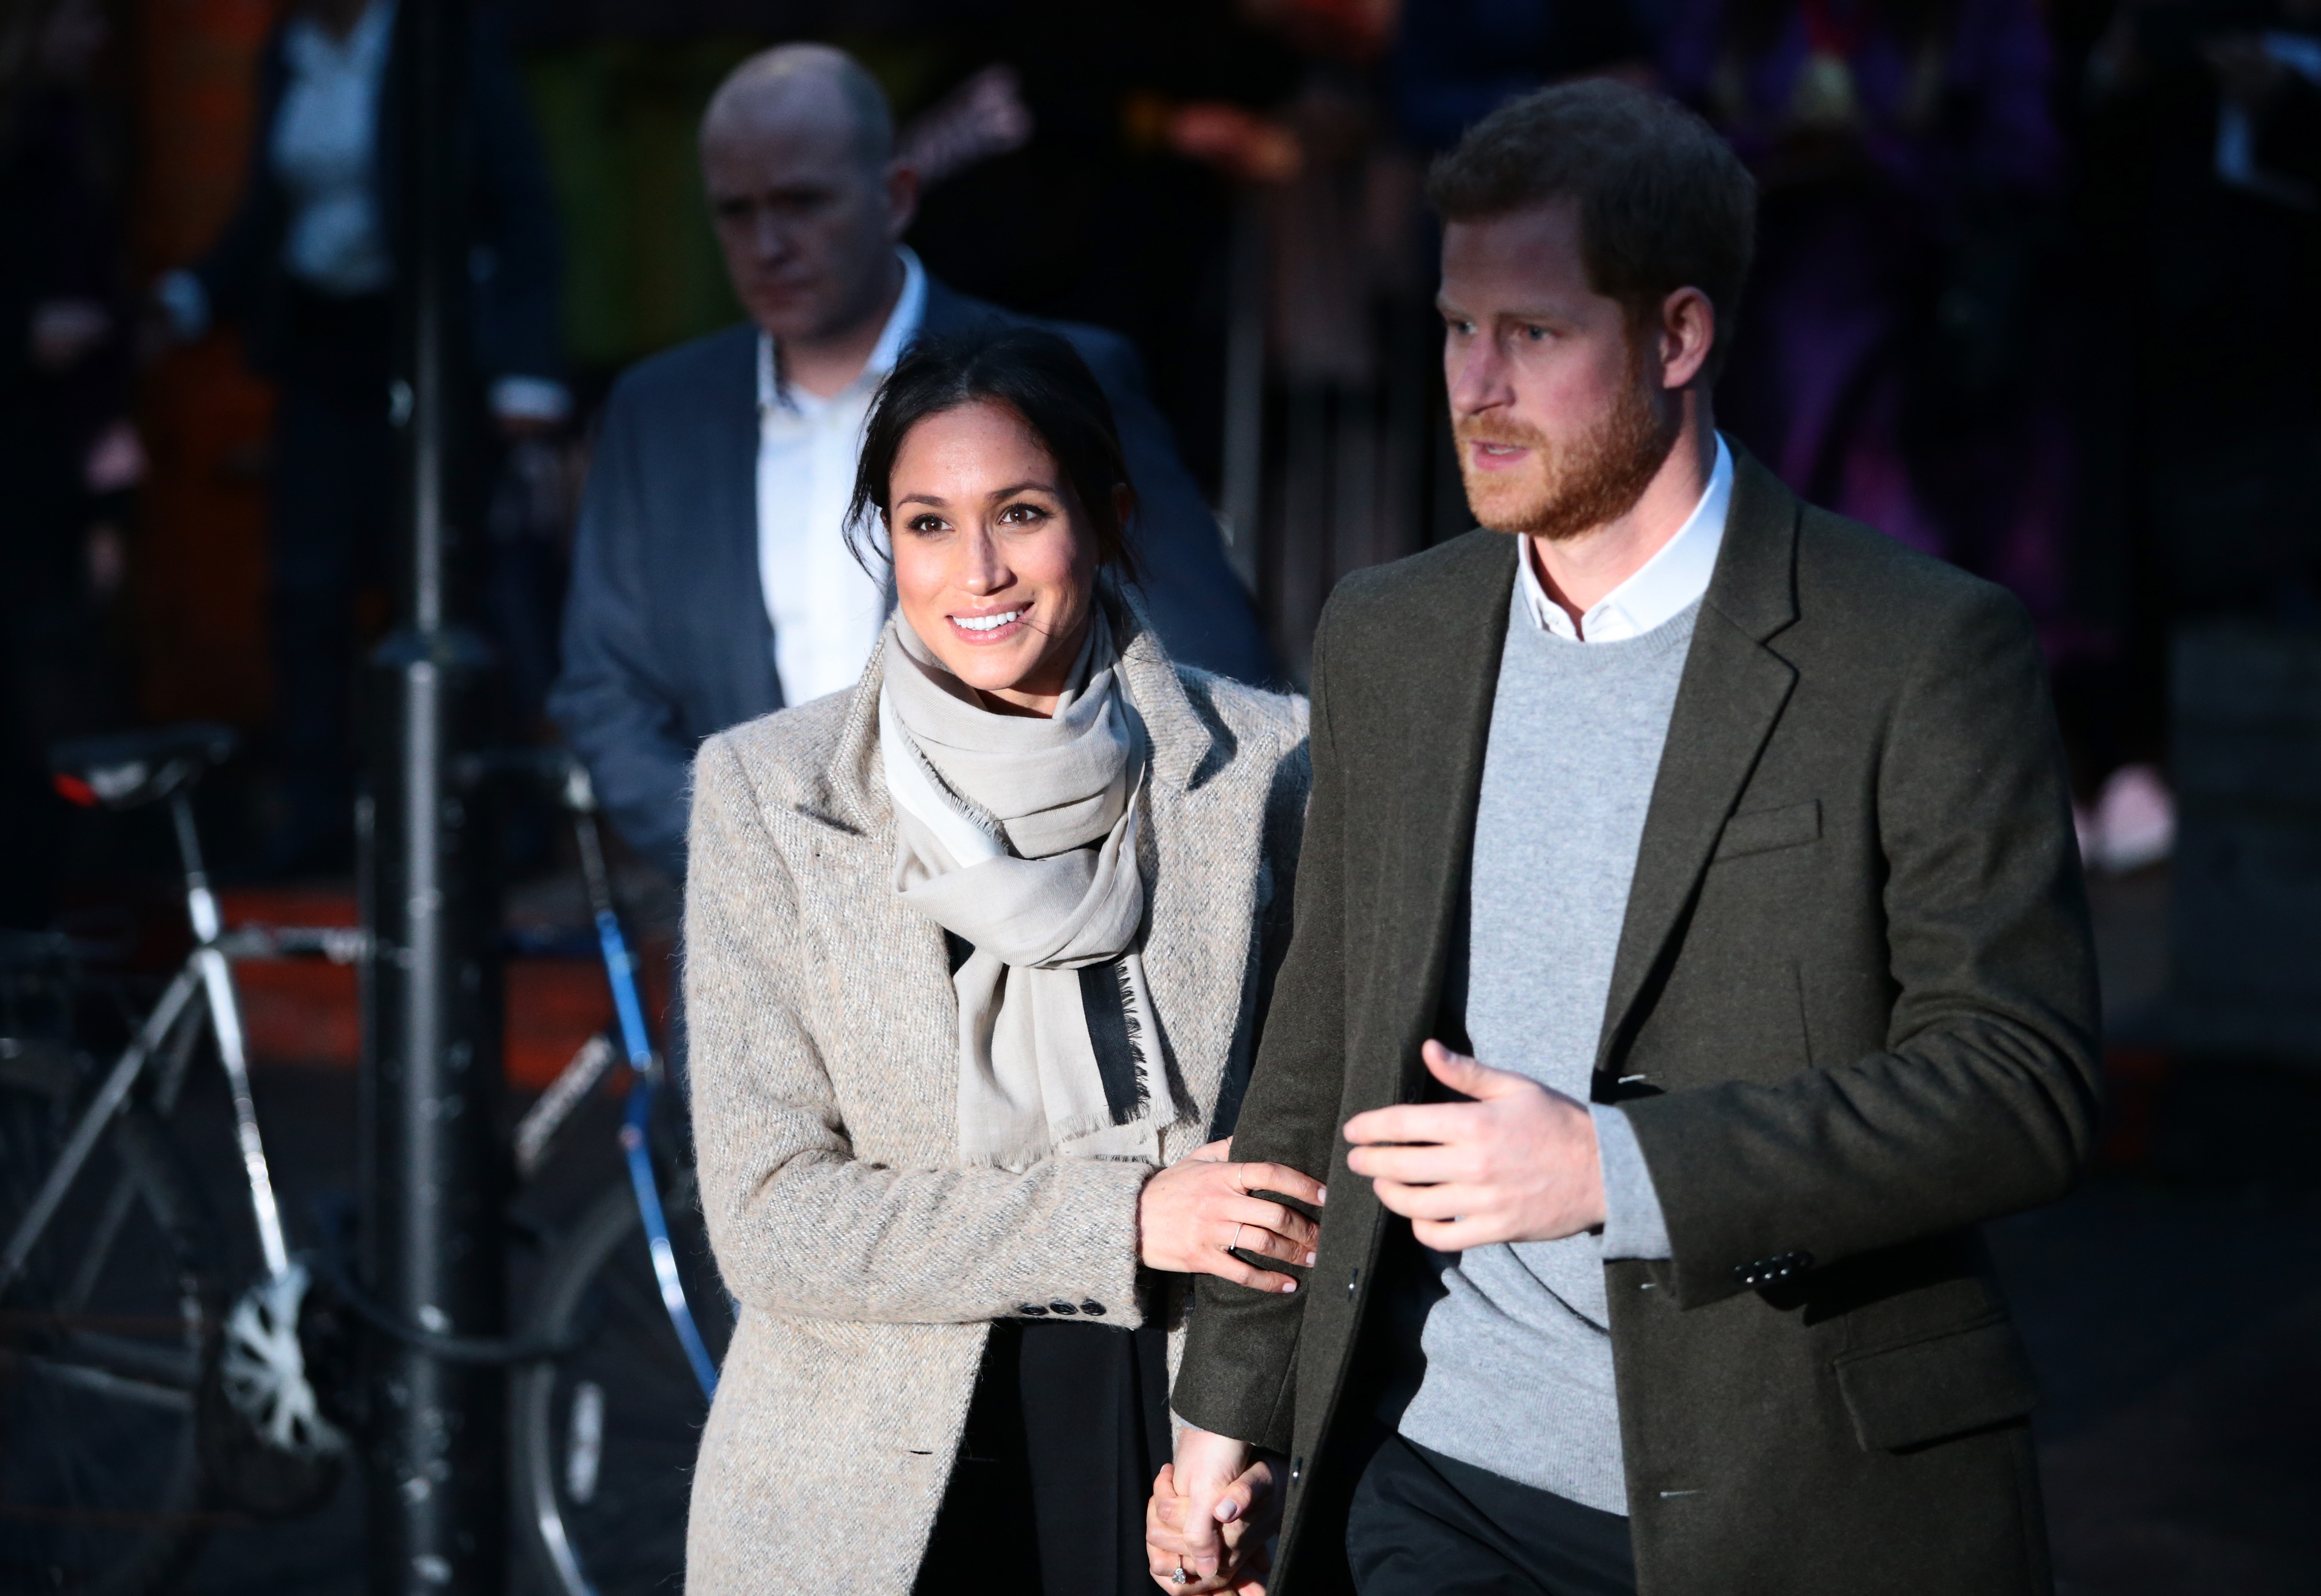 prince harry engaged to actress